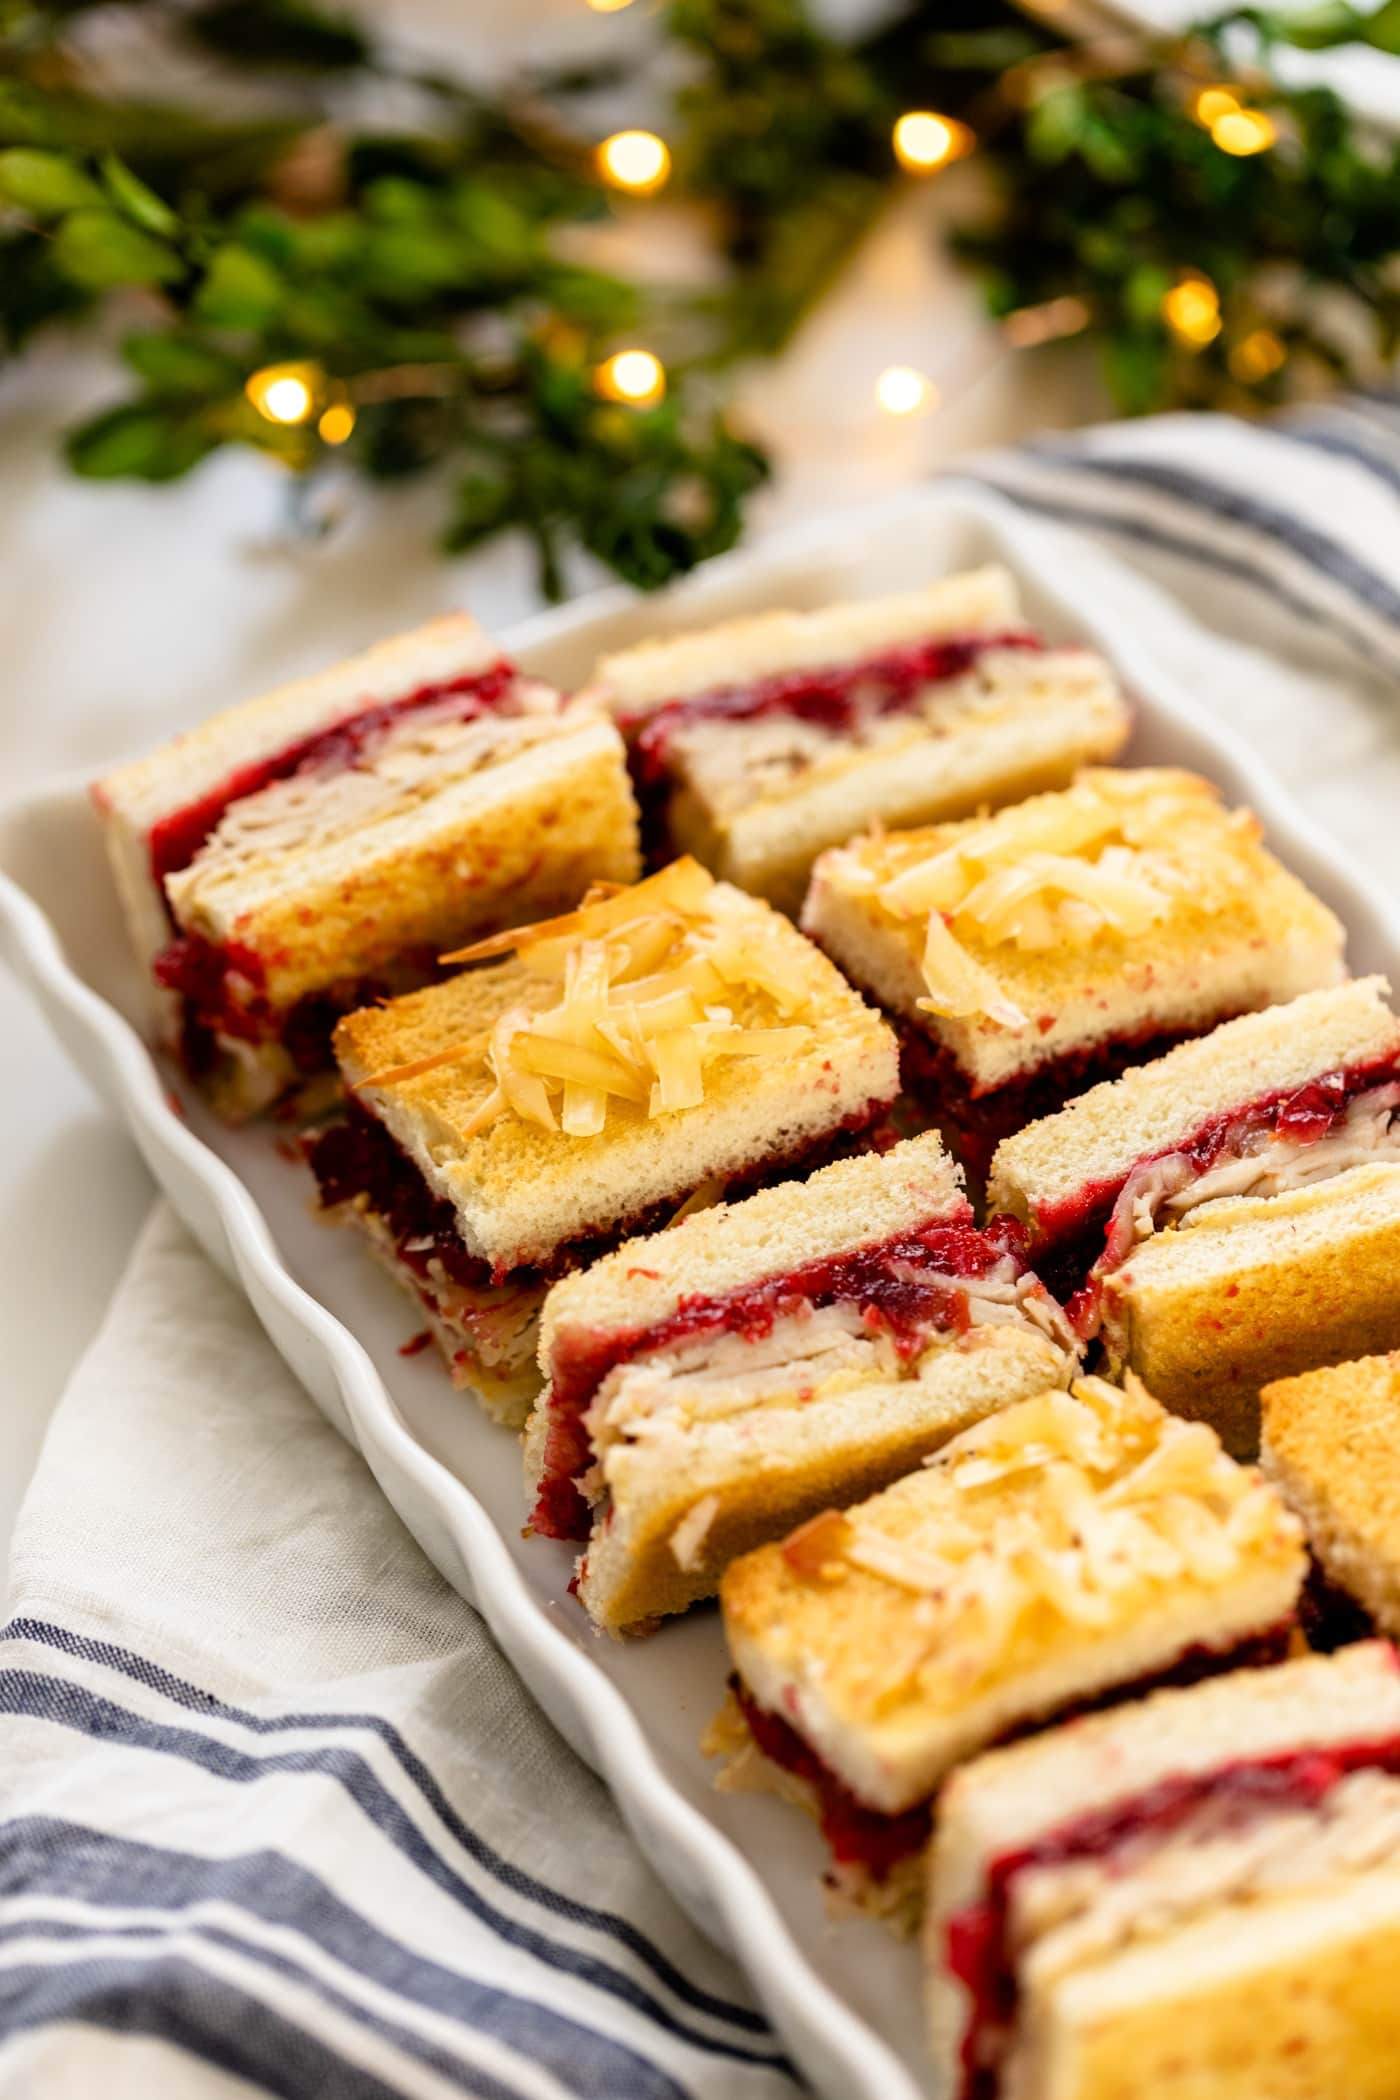 Turkey cranberry croque monsieur sandwiches sitting on white serving plate with linen napkin underneath with Christmas lights and greenery in background on white surface